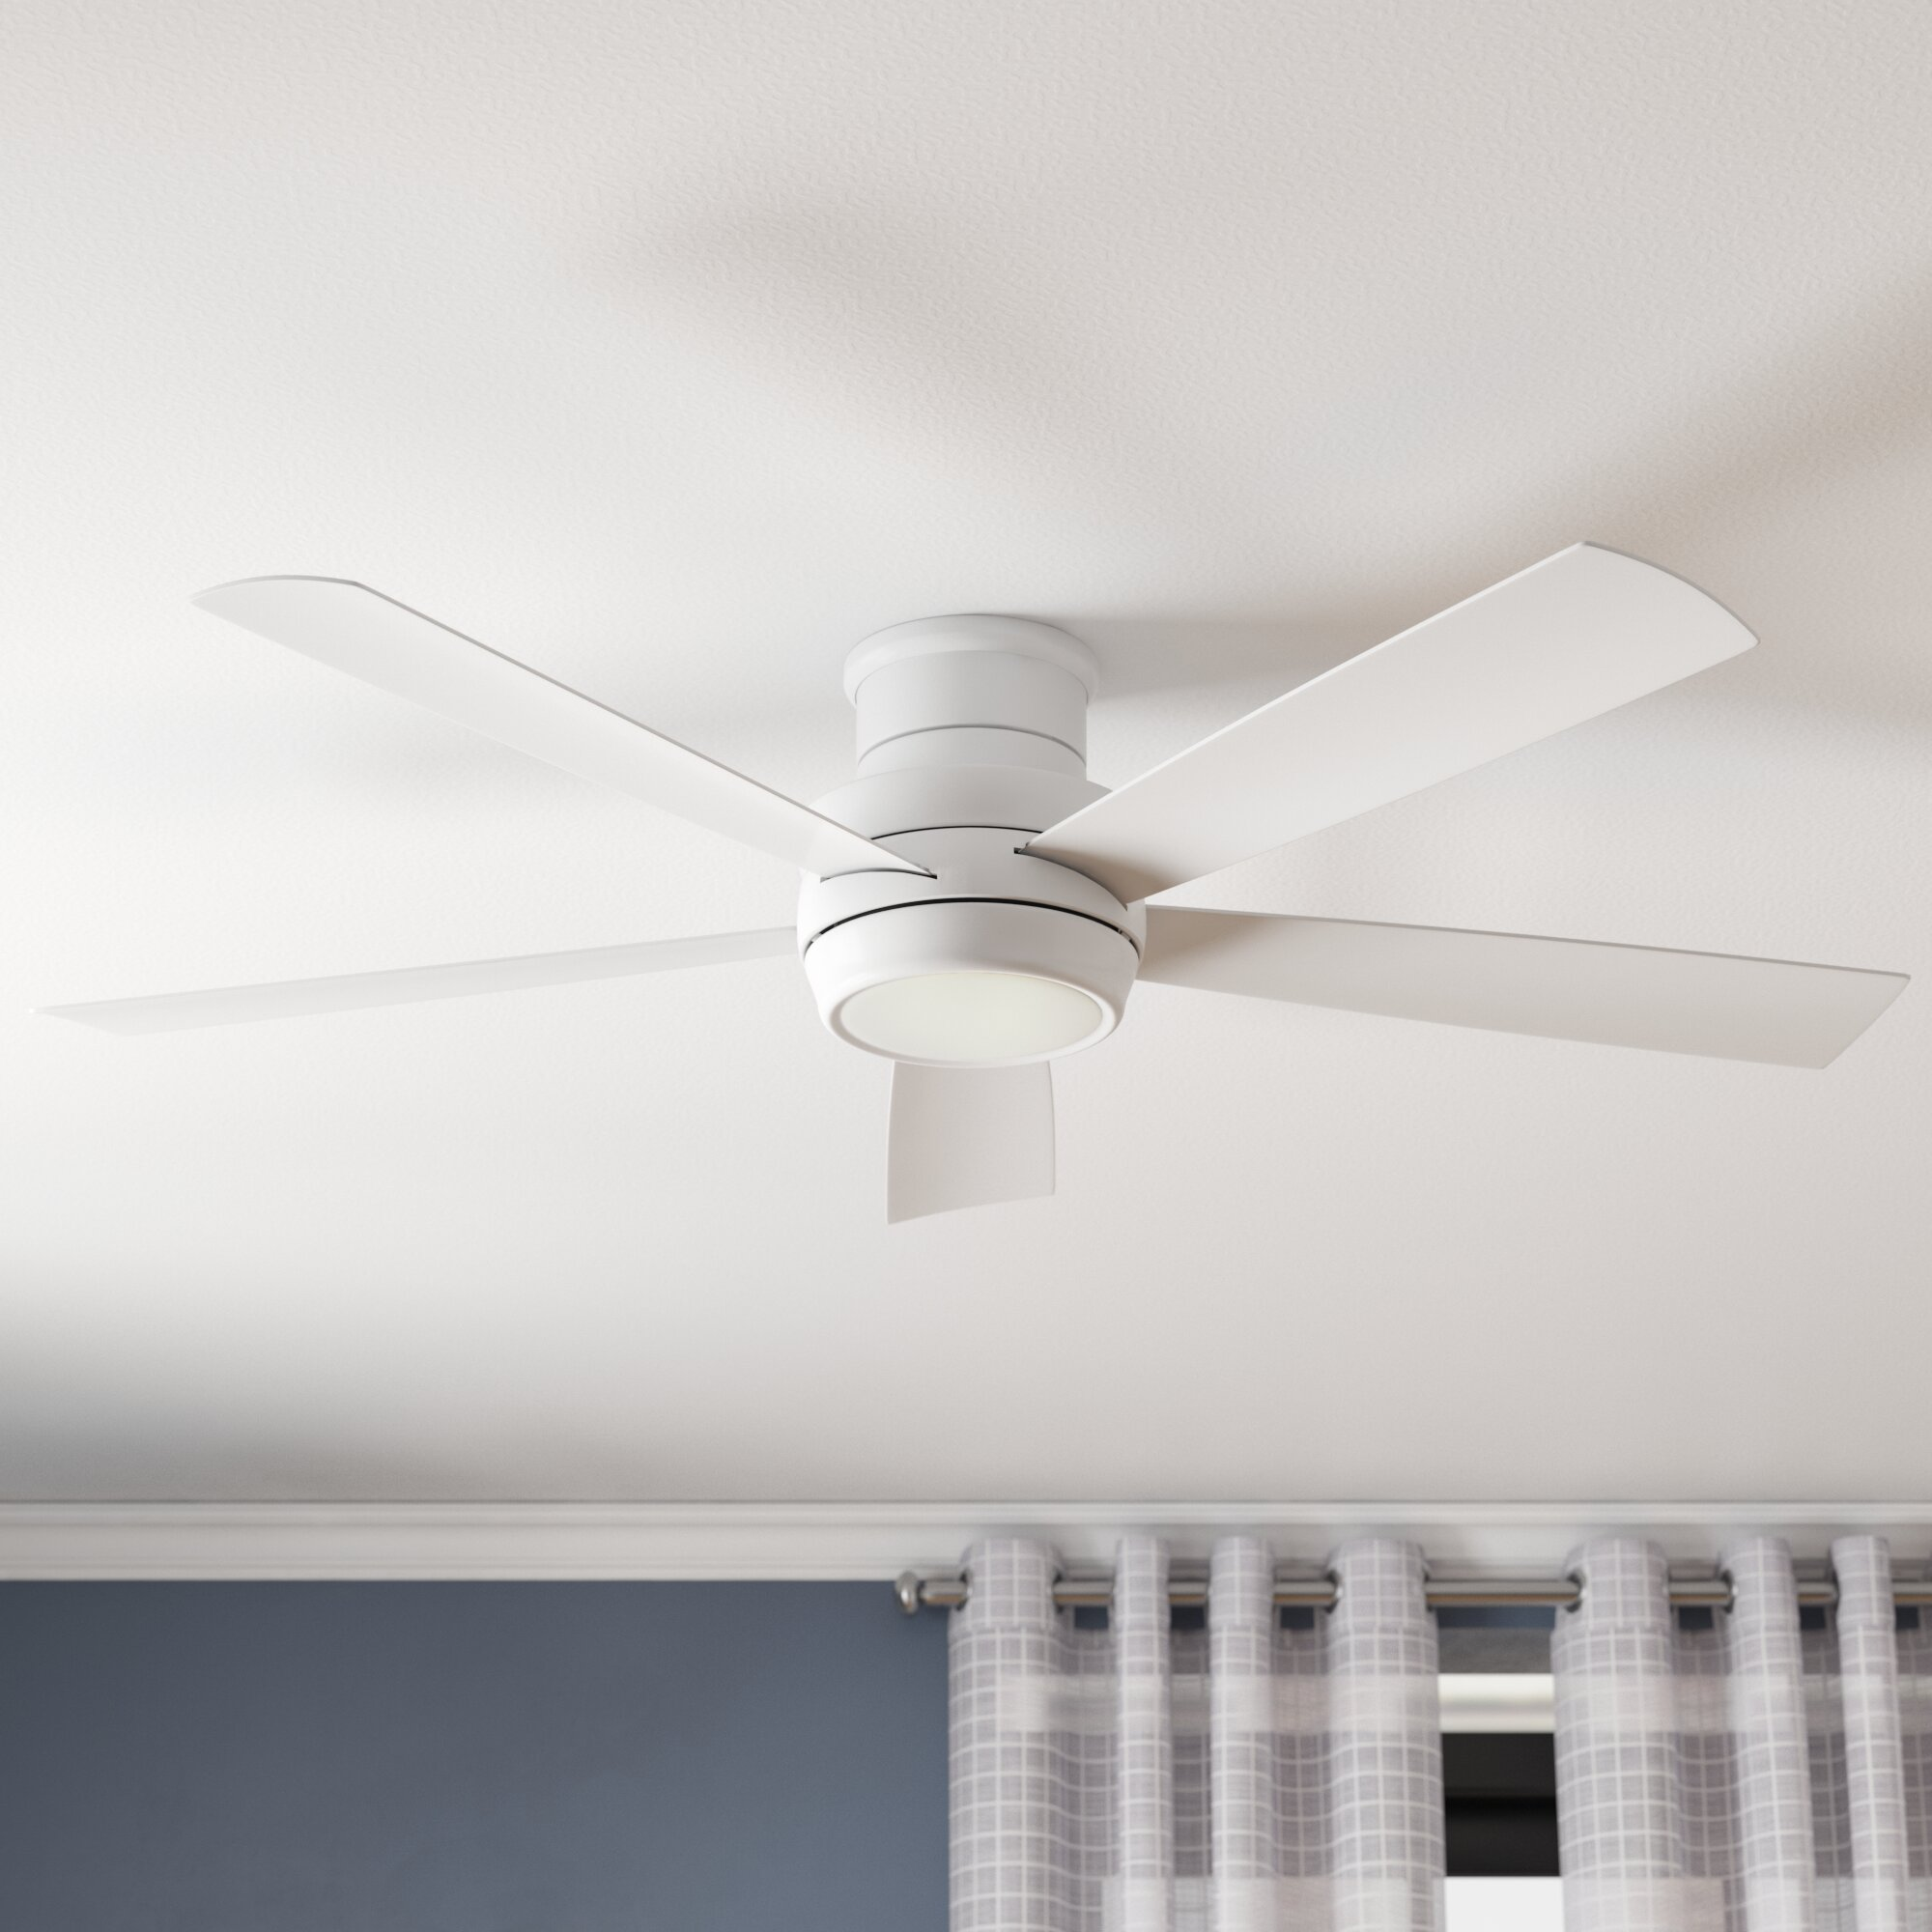 Laude Run 52 Cedarton Hugger 5 Blade Ceiling Fan With Remote Light Kit Included Reviews Wayfair